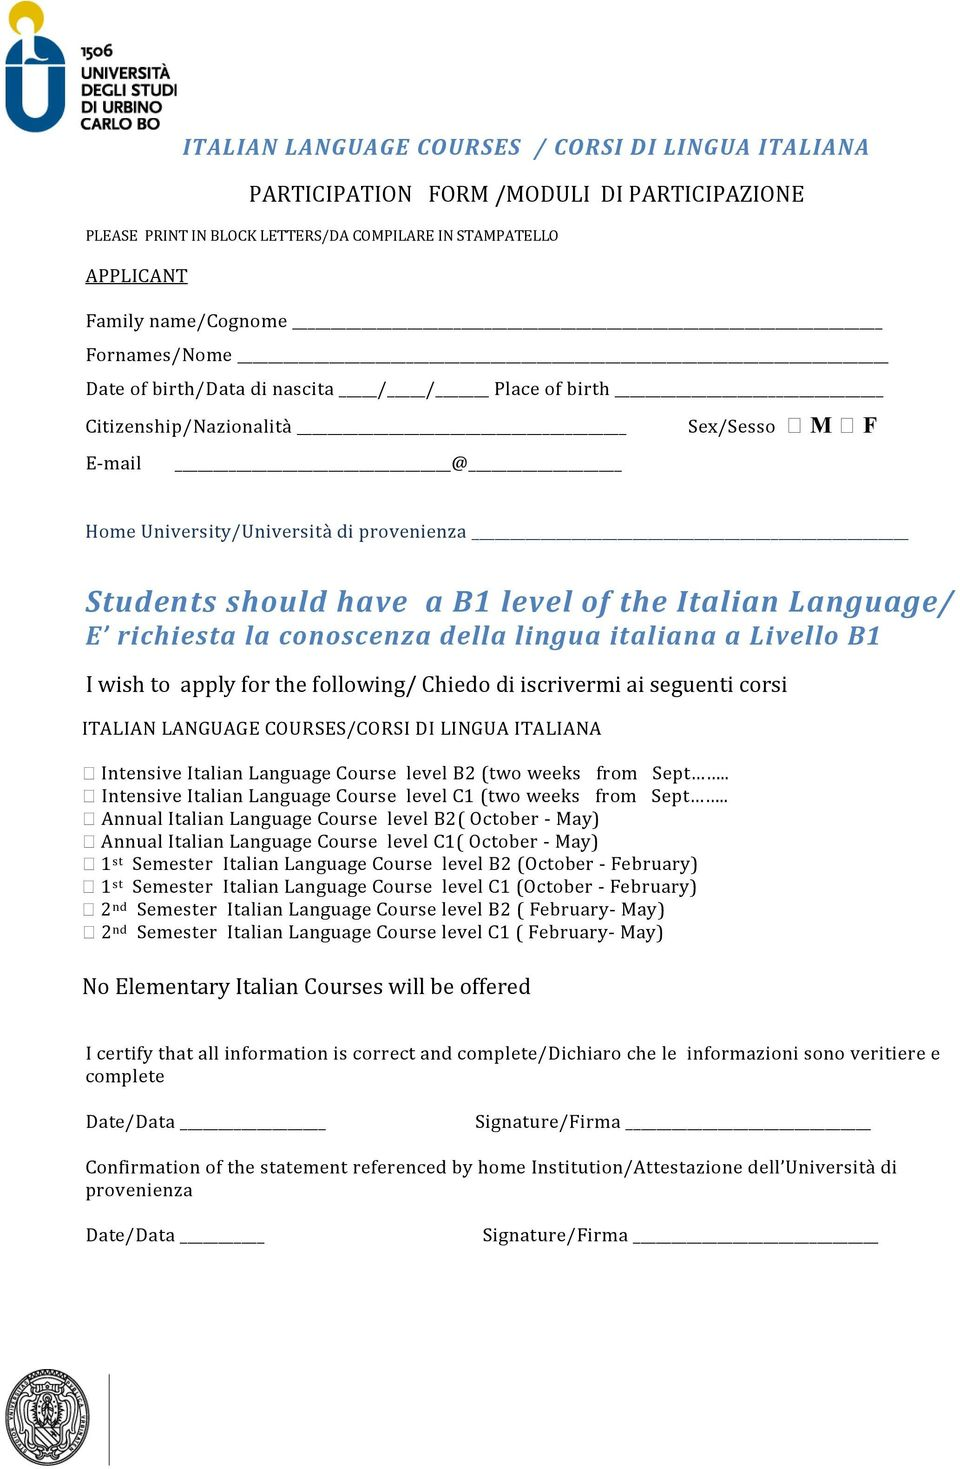 Intensive Italian Language Course level B2 (two weeks from Sept.. Intensive Italian Language Course level C1 (two weeks from Sept.